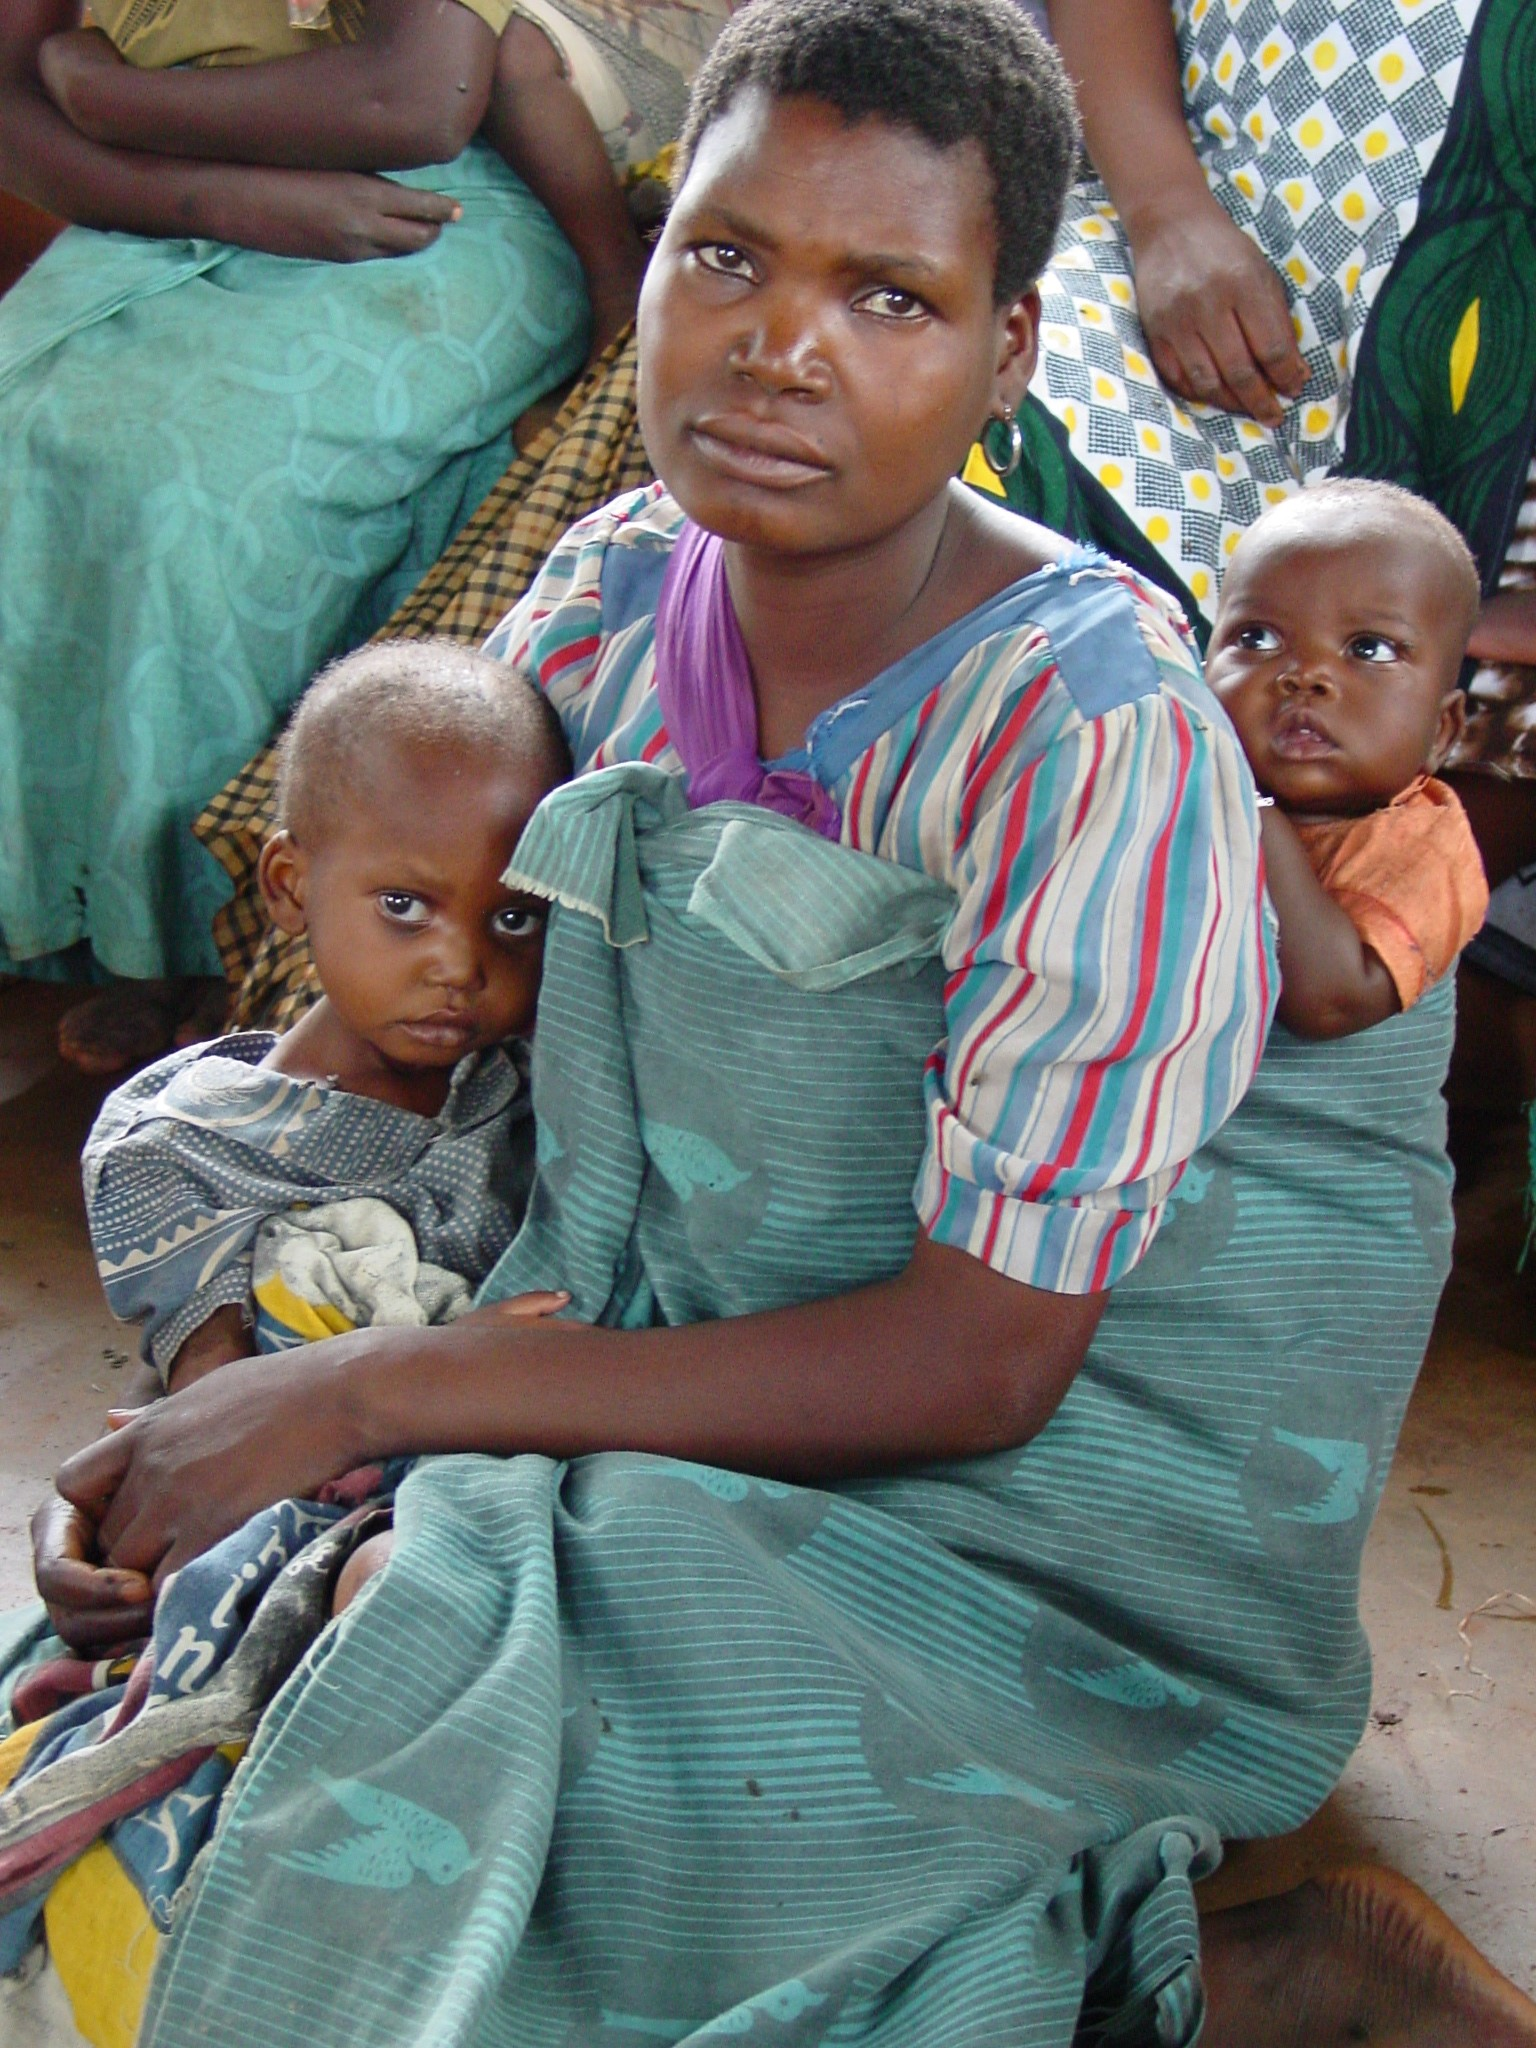 A woman and a young child in Malawi.